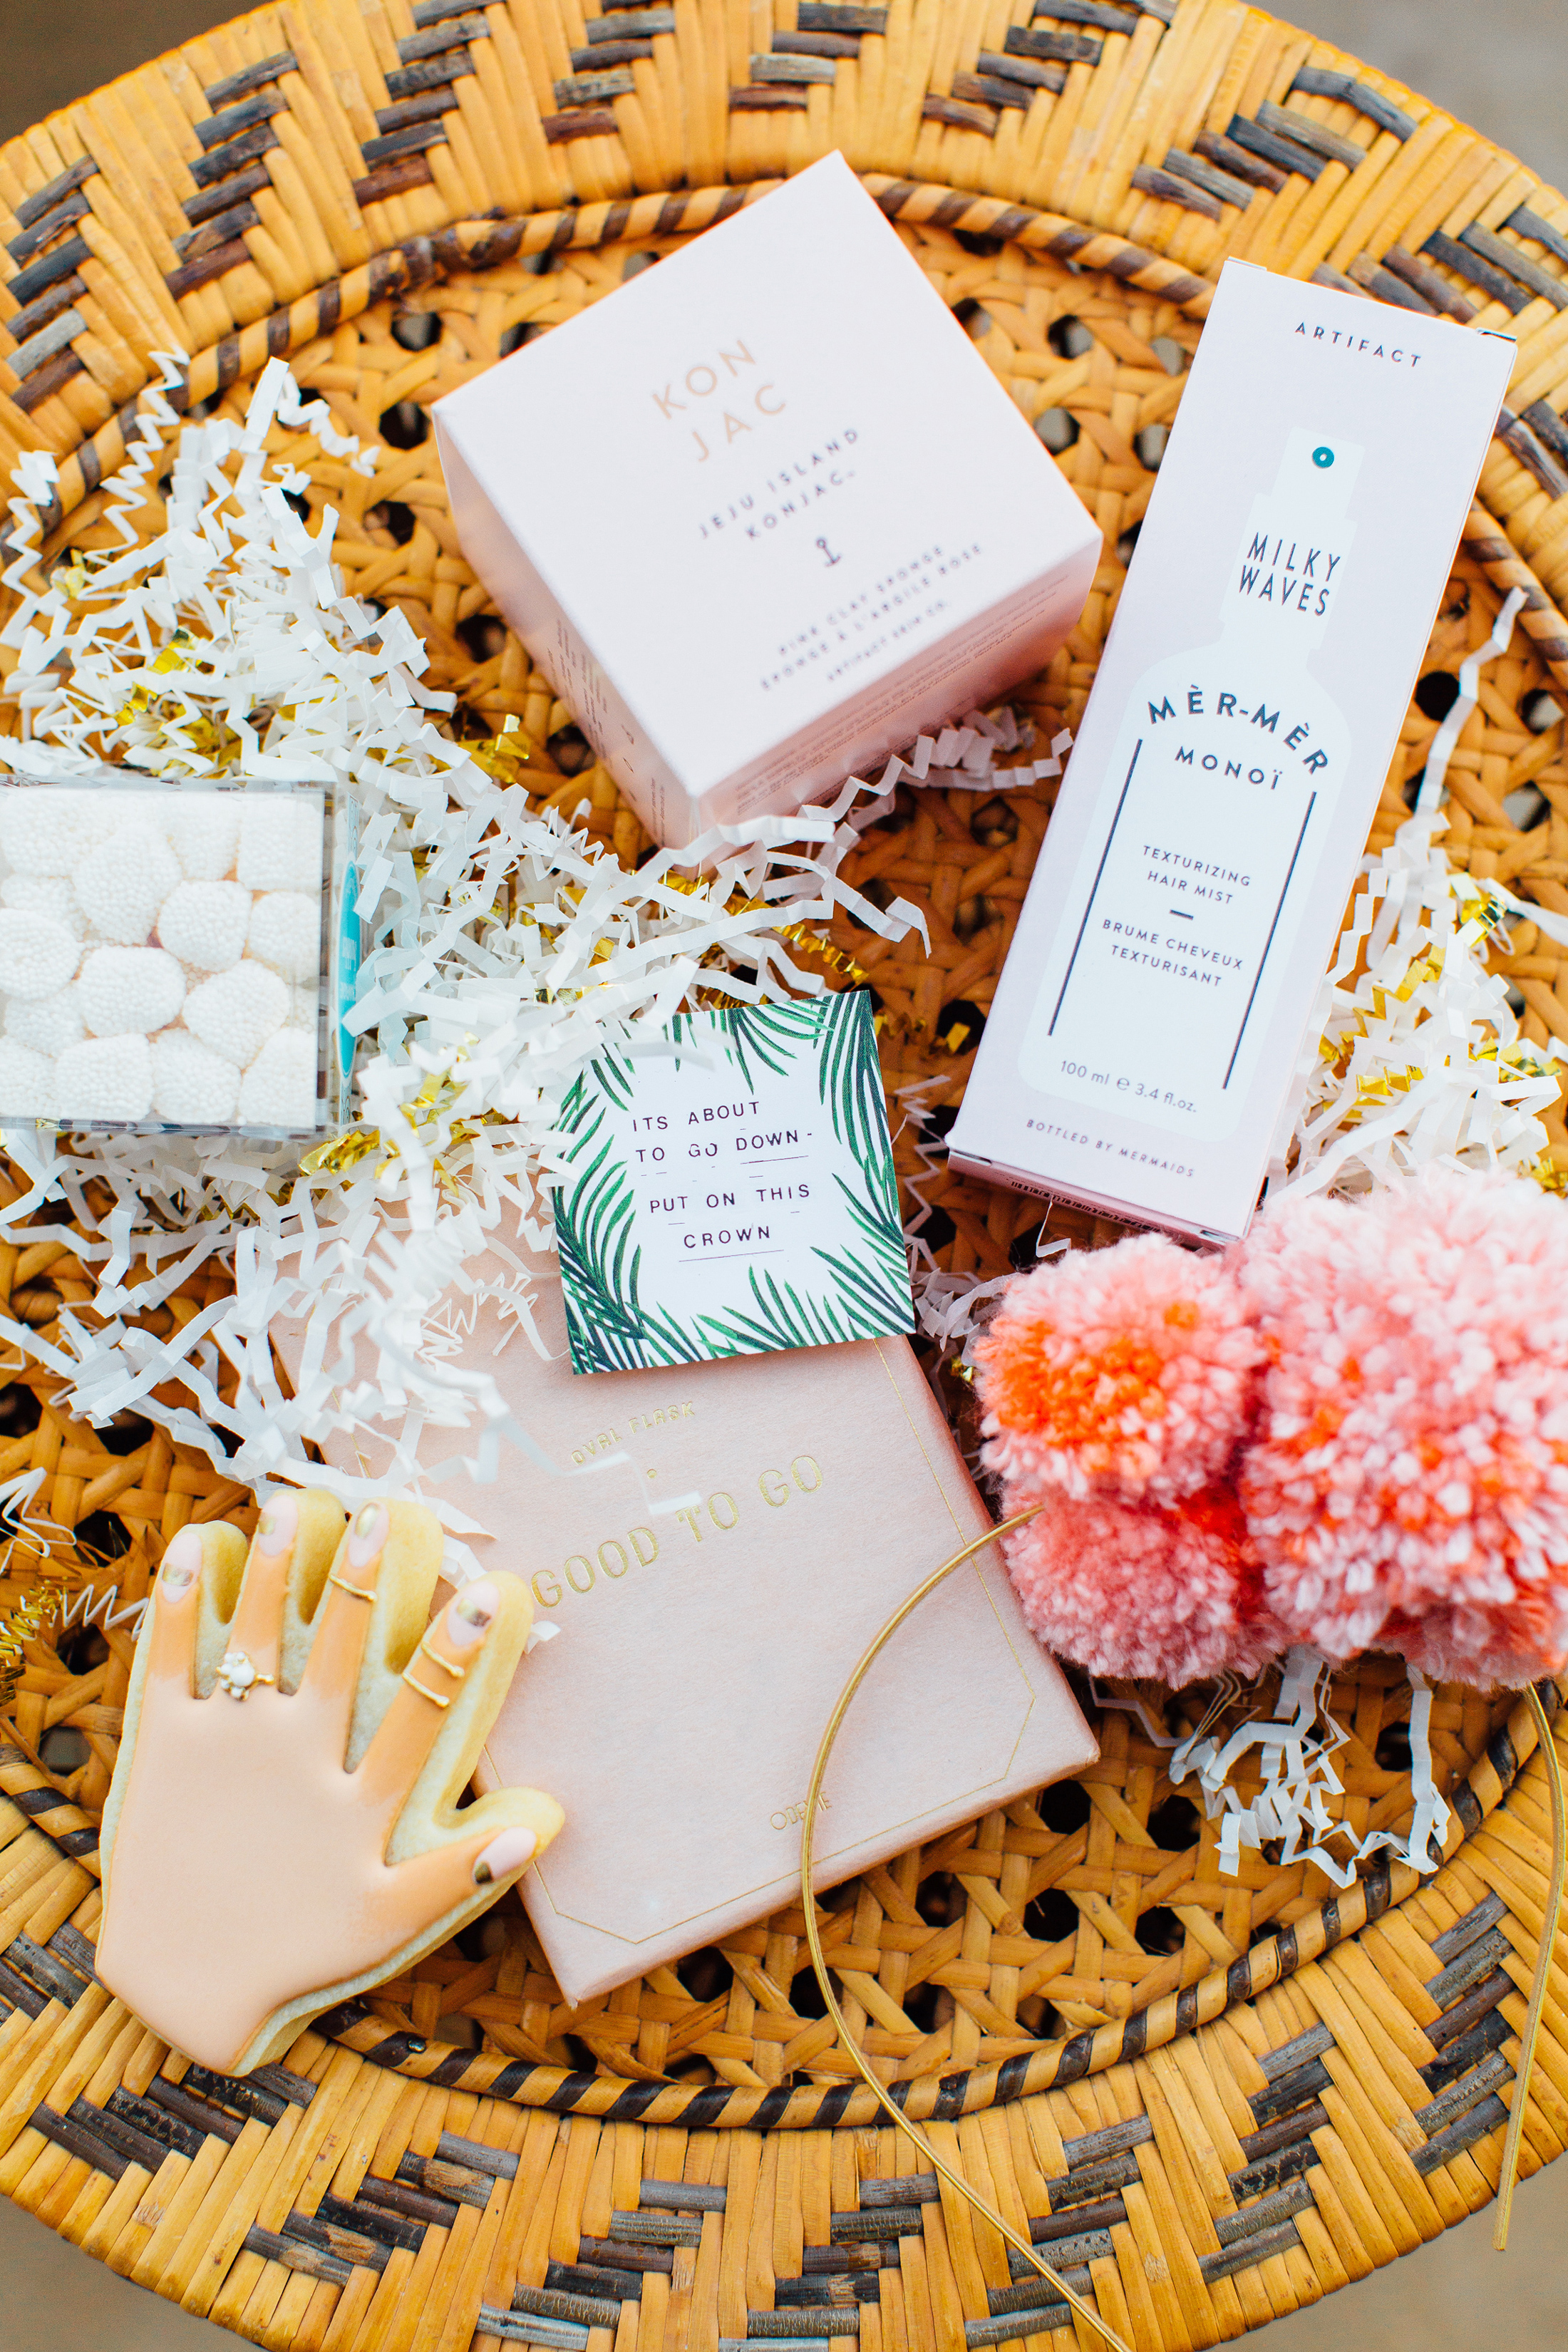 bridal shower gifts on wicker tray